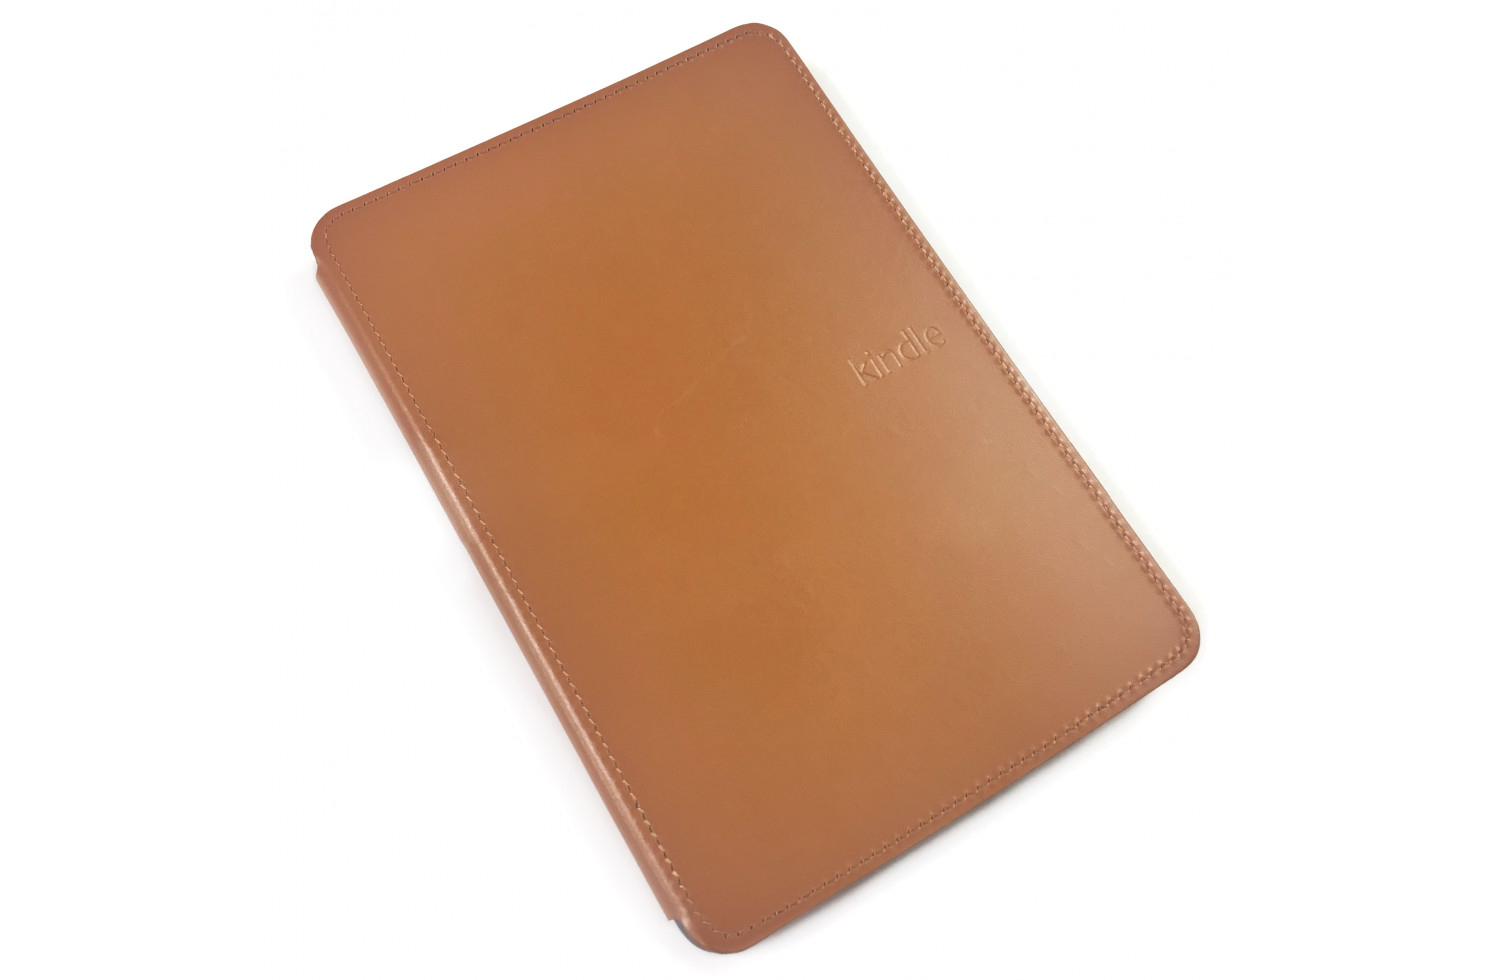 Чехол Amazon Kindle Touch Lighted Leather Cover Saddle Tan